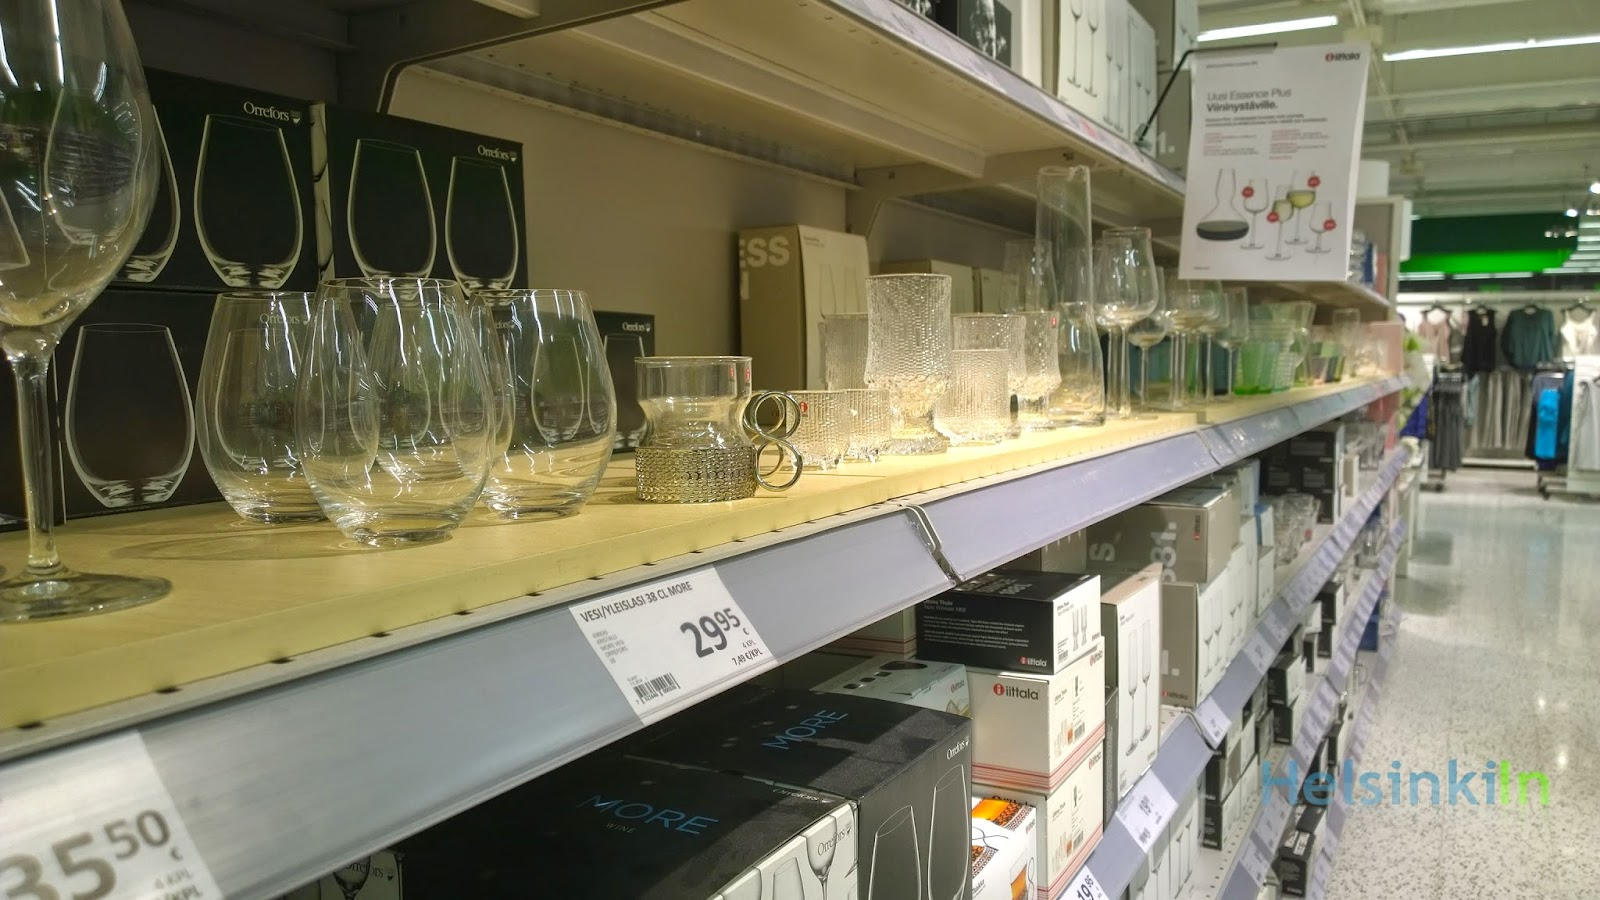 Iittala products at Prisma